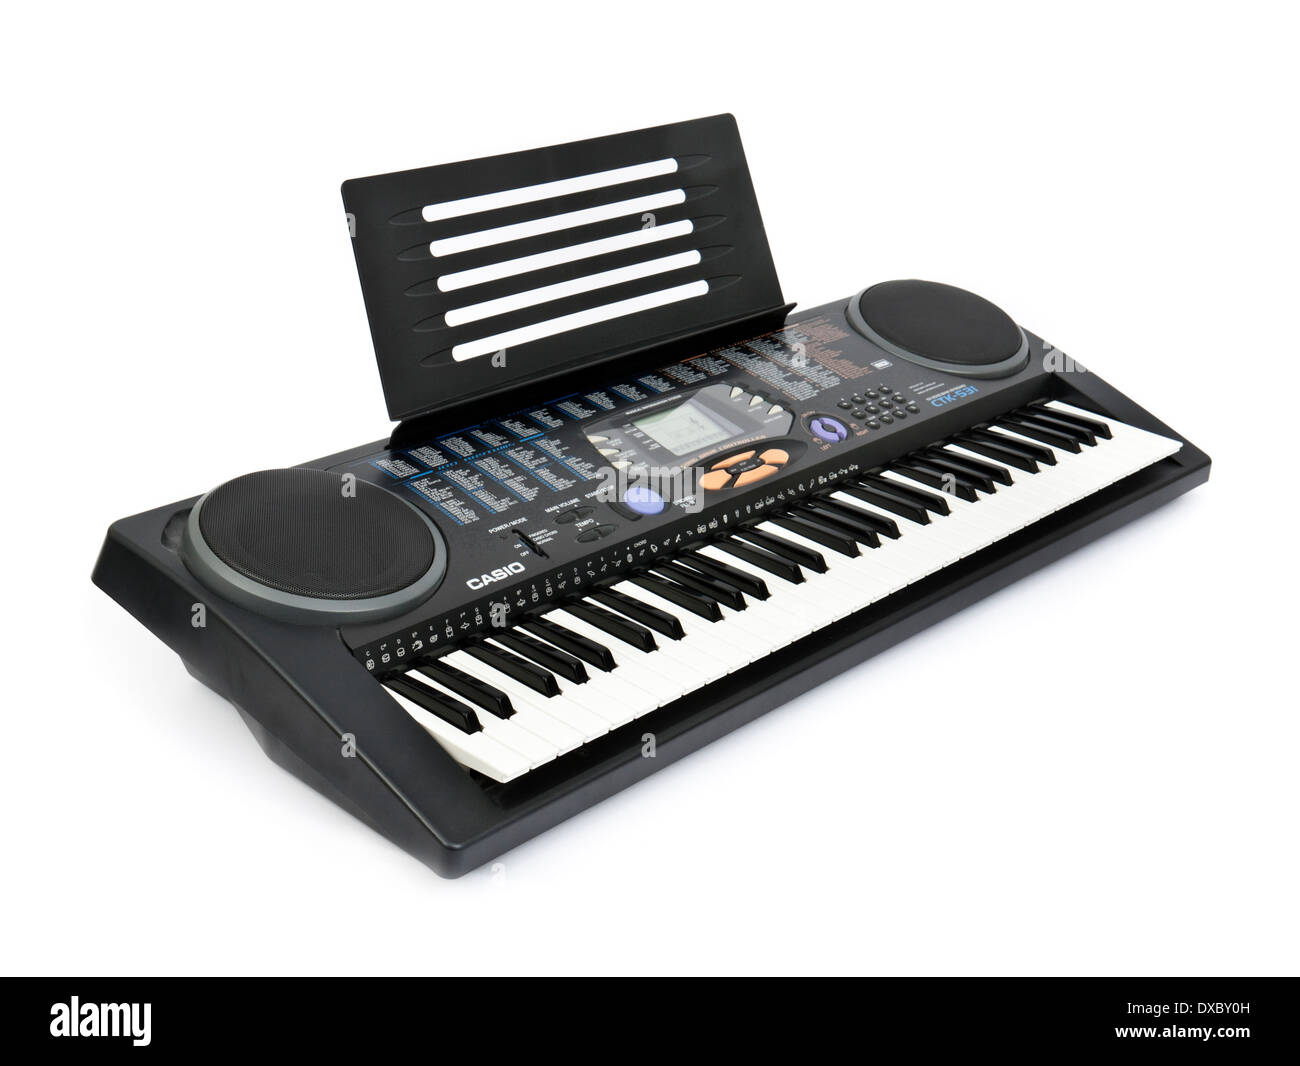 casio ctk 531 portable midi electronic keyboard from 2008 stock photo royalty free image. Black Bedroom Furniture Sets. Home Design Ideas